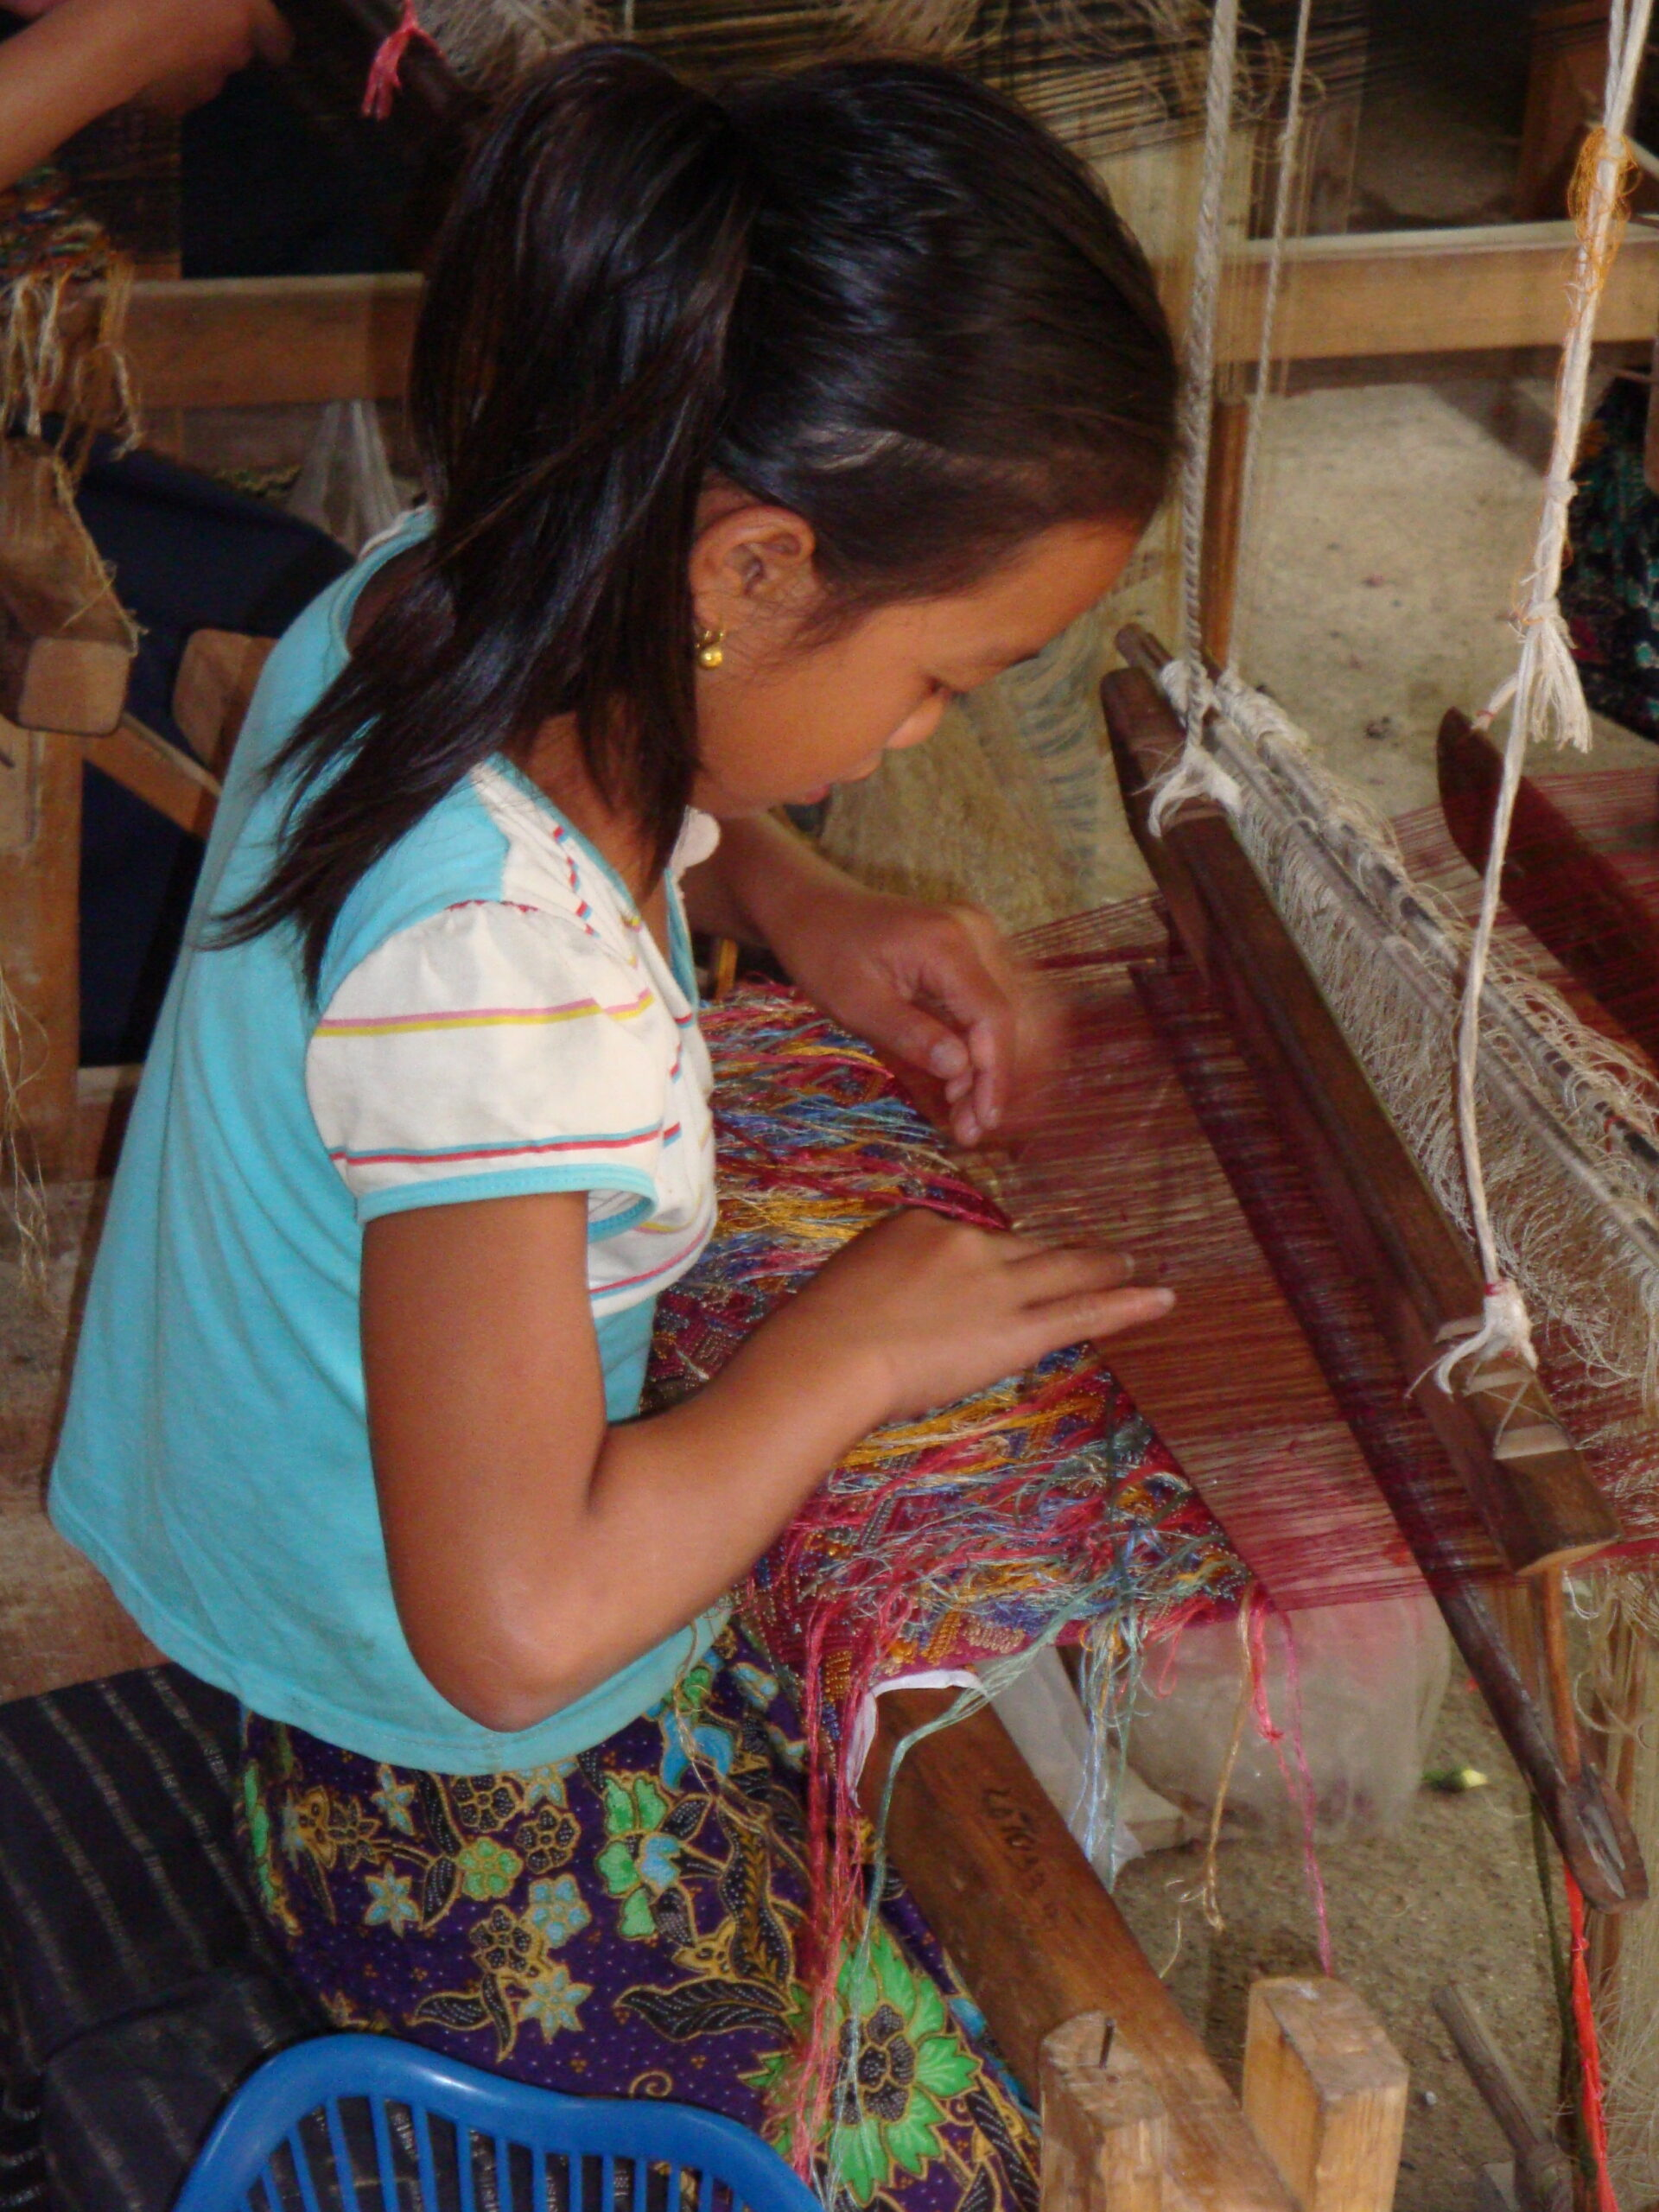 A 13-year-old weaver works on a silk healing cloth.